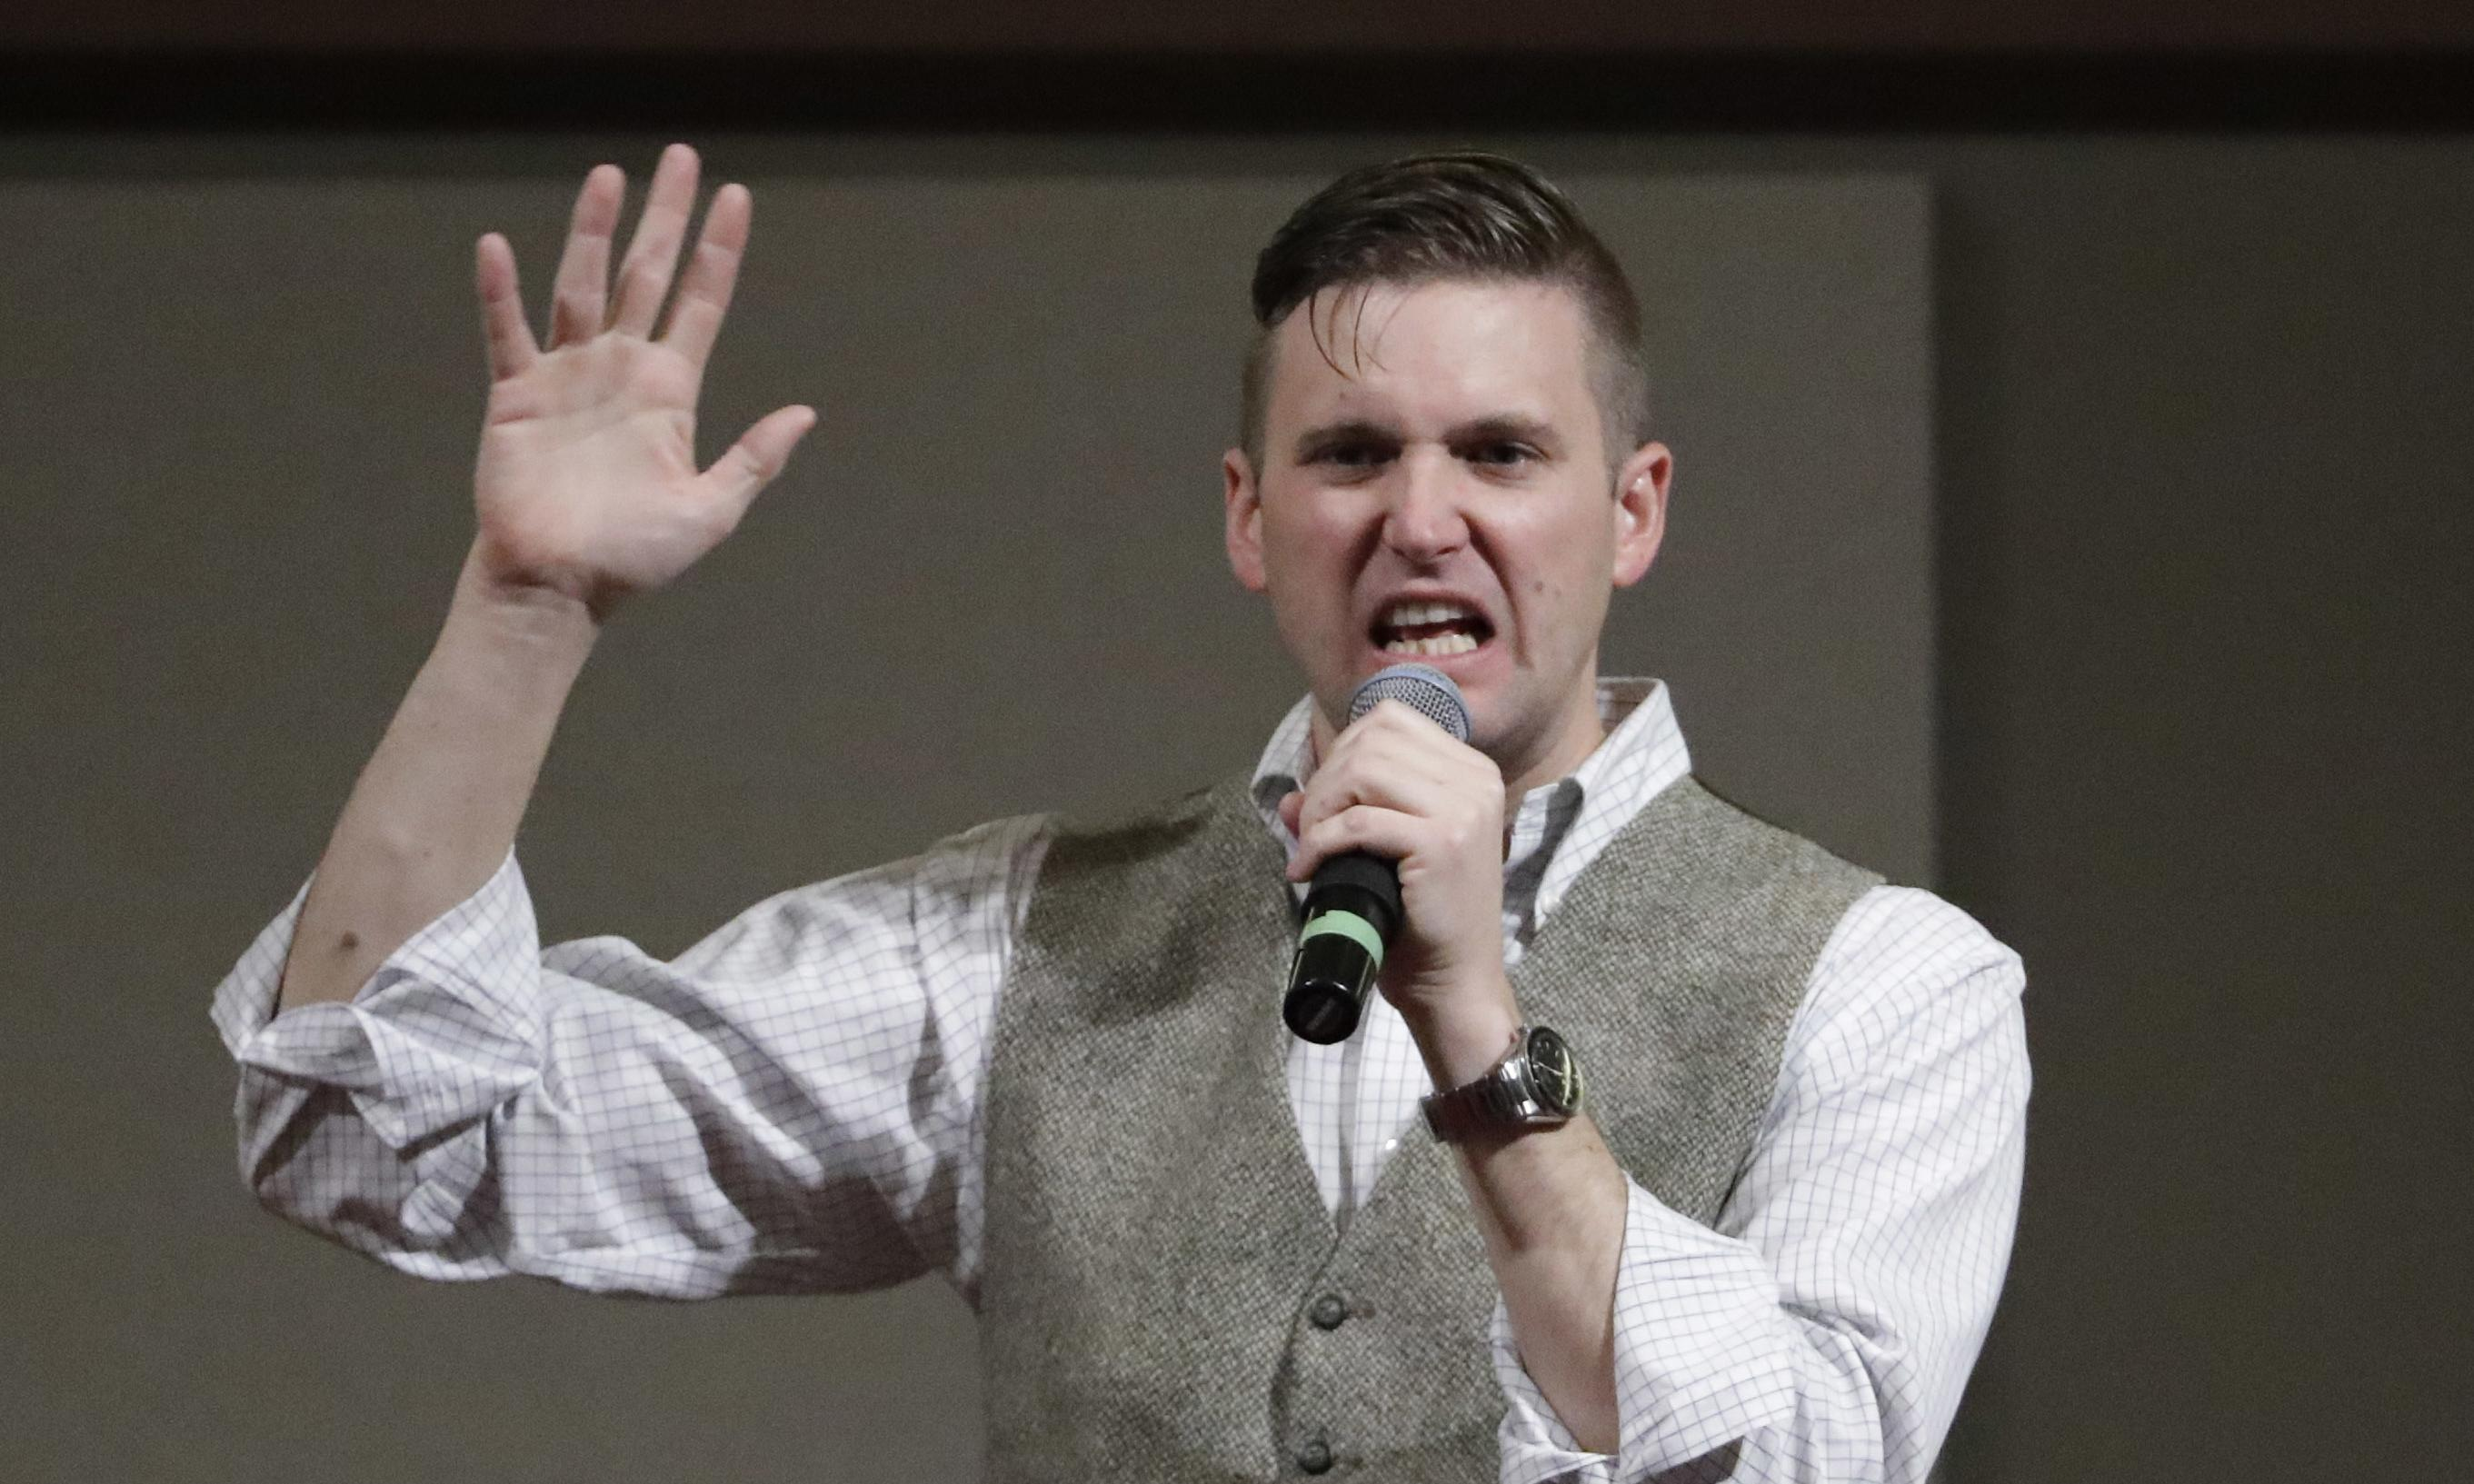 White supremacist Richard Spencer makes racist slurs on tape leaked by rival